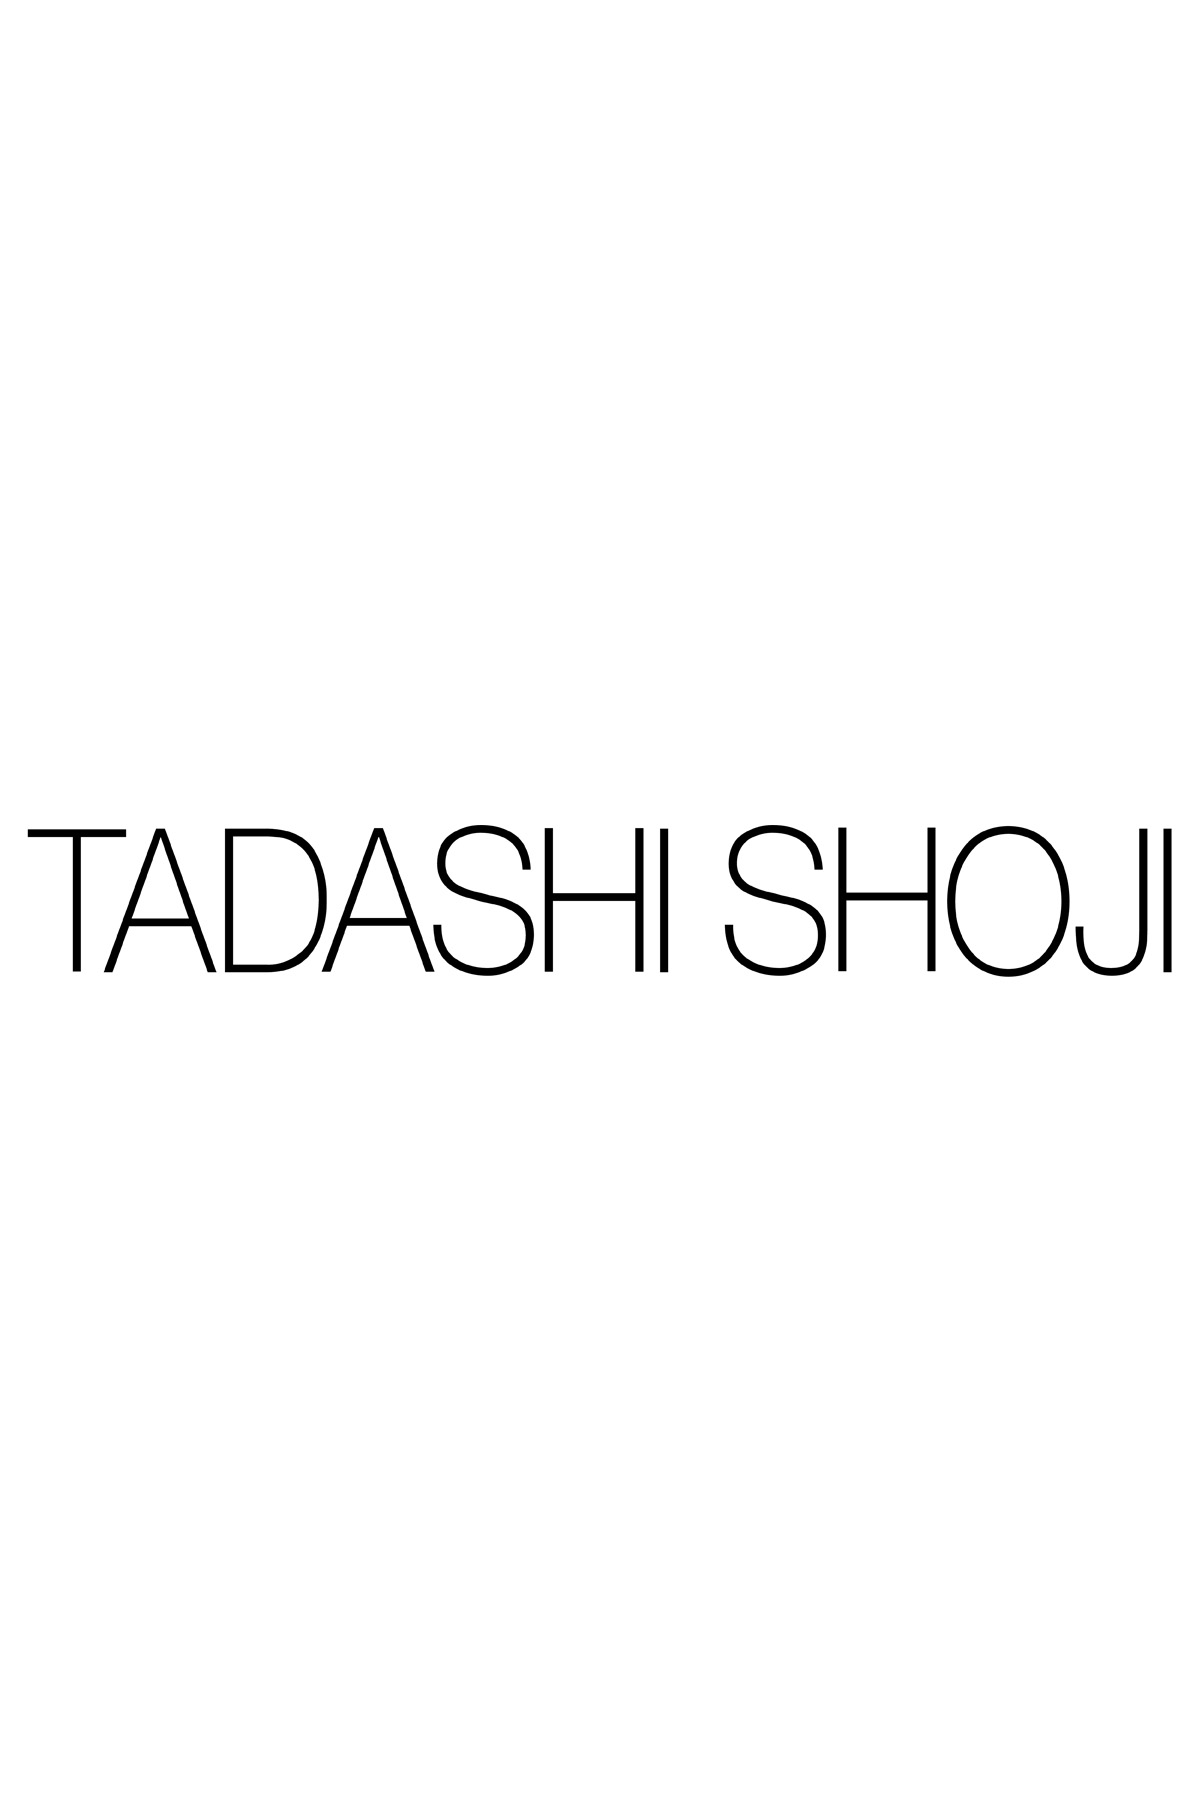 Tadashi Shoji Plus Size Detail - Metallic Corded Embroidery on Tulle V-Neck Gown